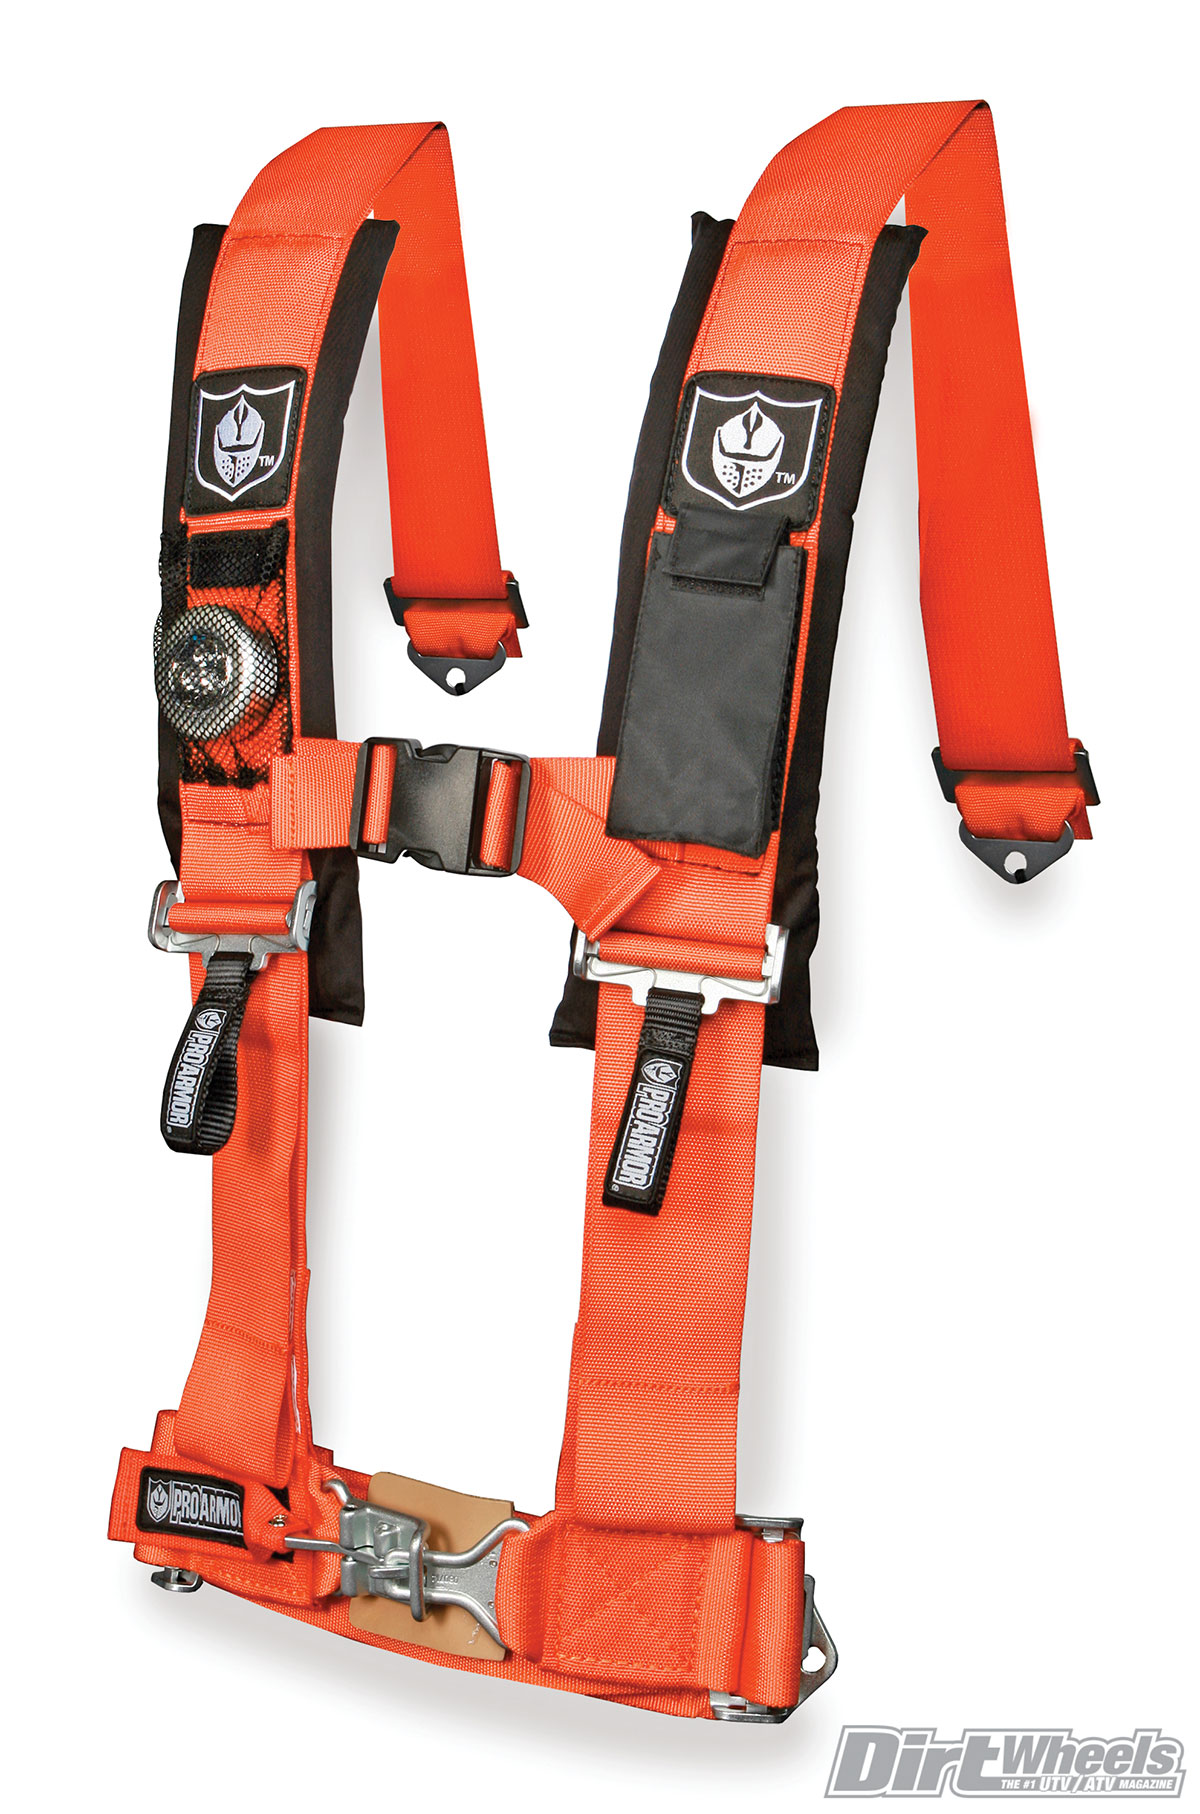 HOME BUILT AIRCRAFT 3X3 RED 5 POINT SAFETY HARNESS SEATBELT